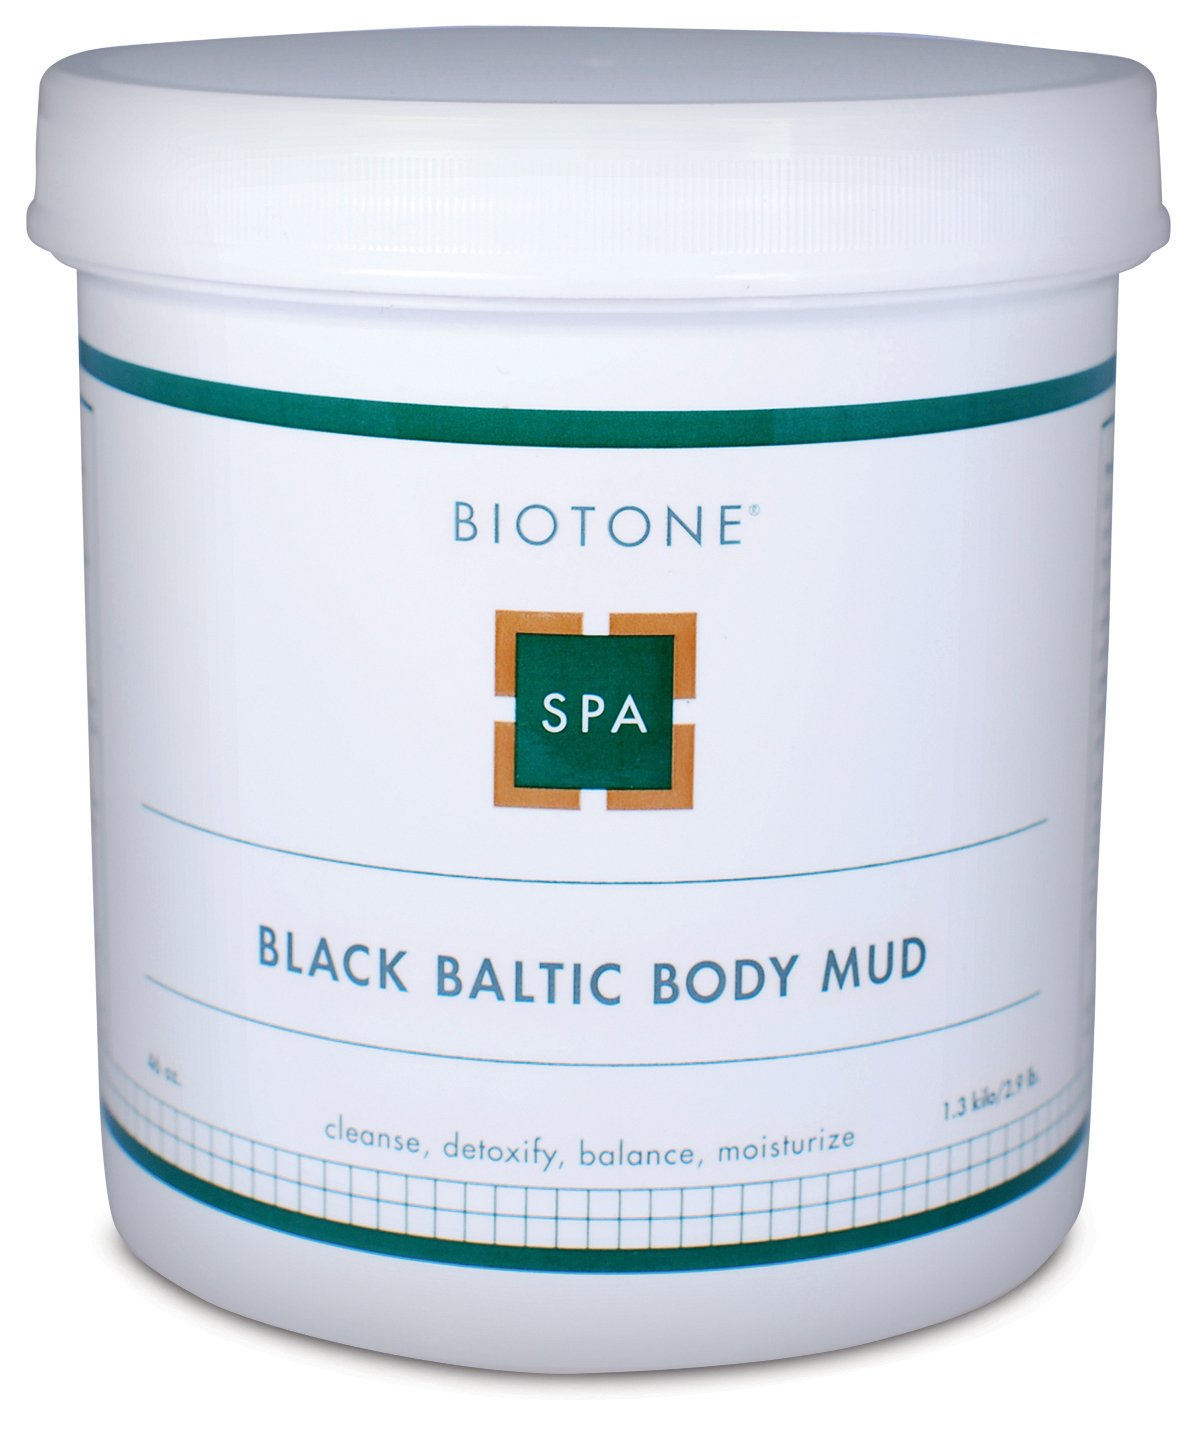 Biotone Black Baltic Body Mud, 46 Ounce